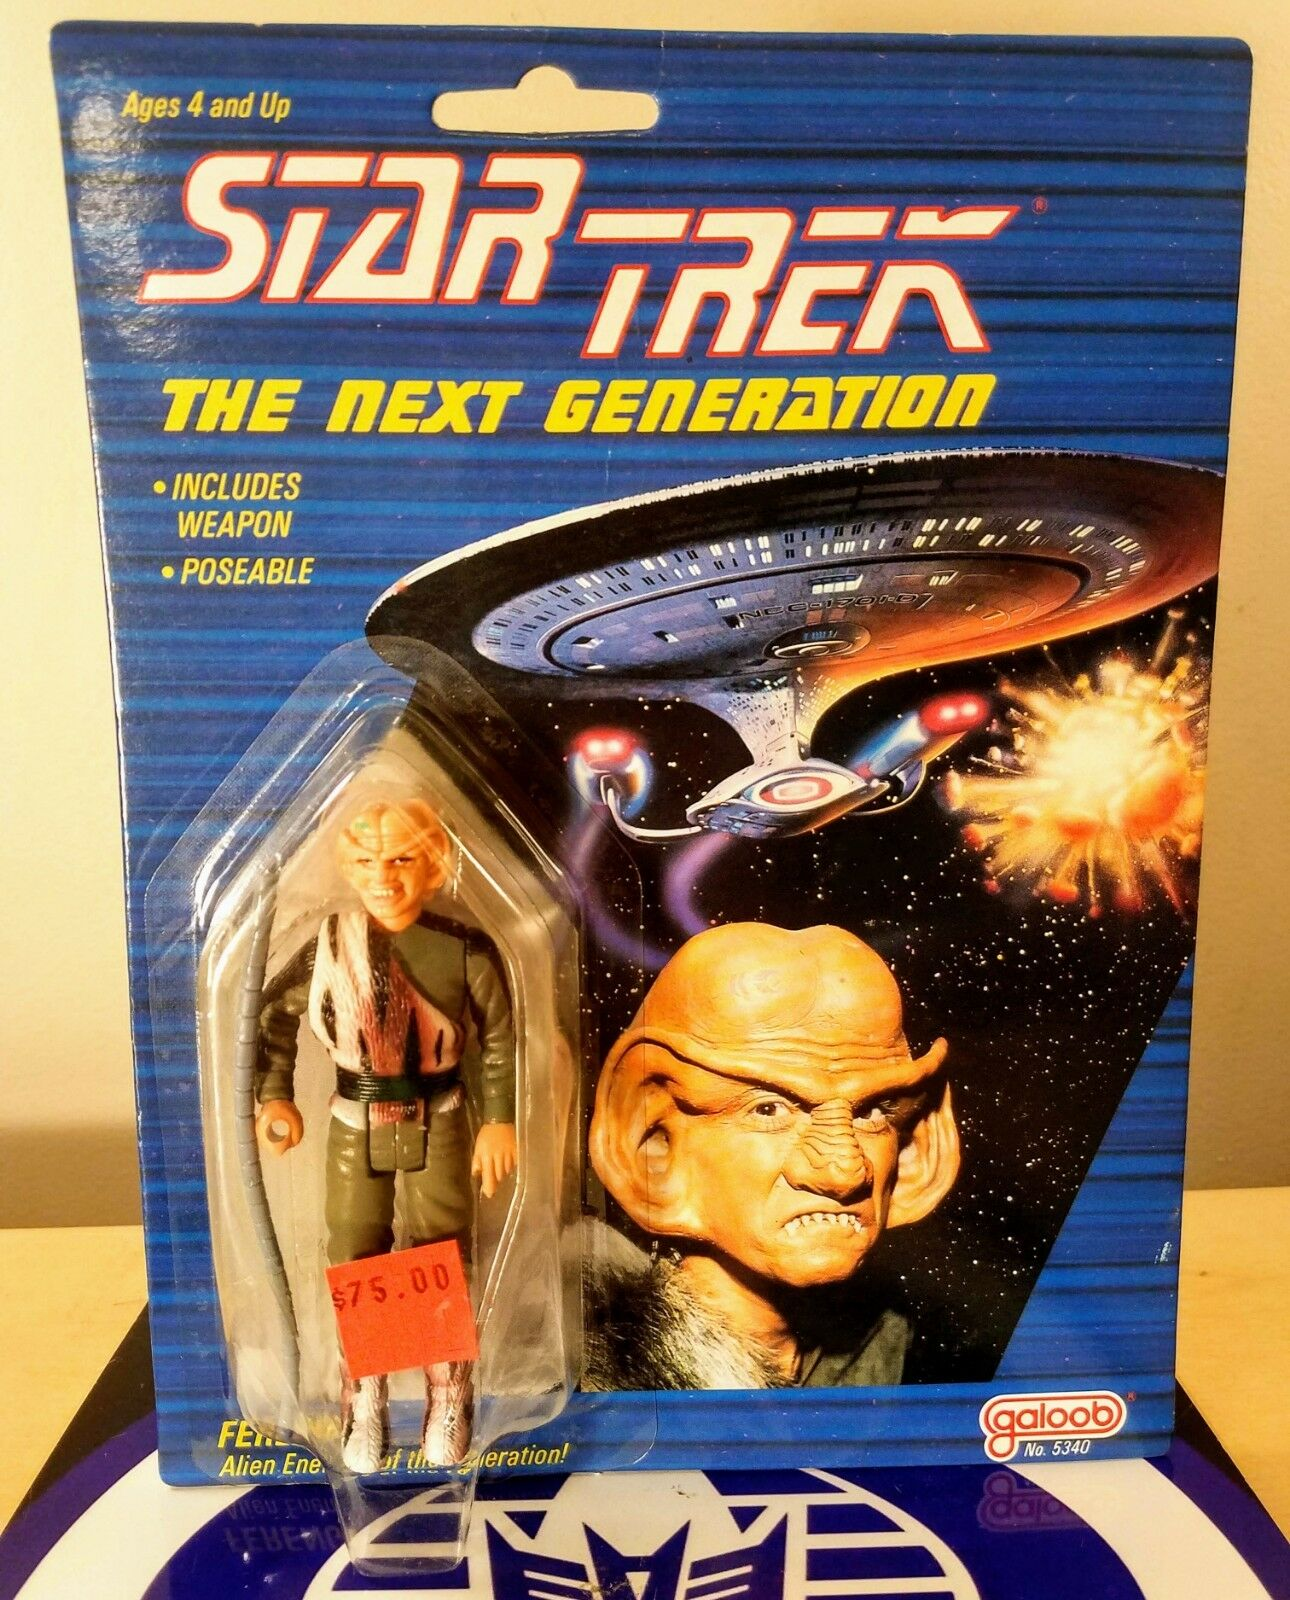 FERENGI STAR TREK THE NEXT GENERATION GALOOB 1988 NEW SEALED EXCELLENT RARE